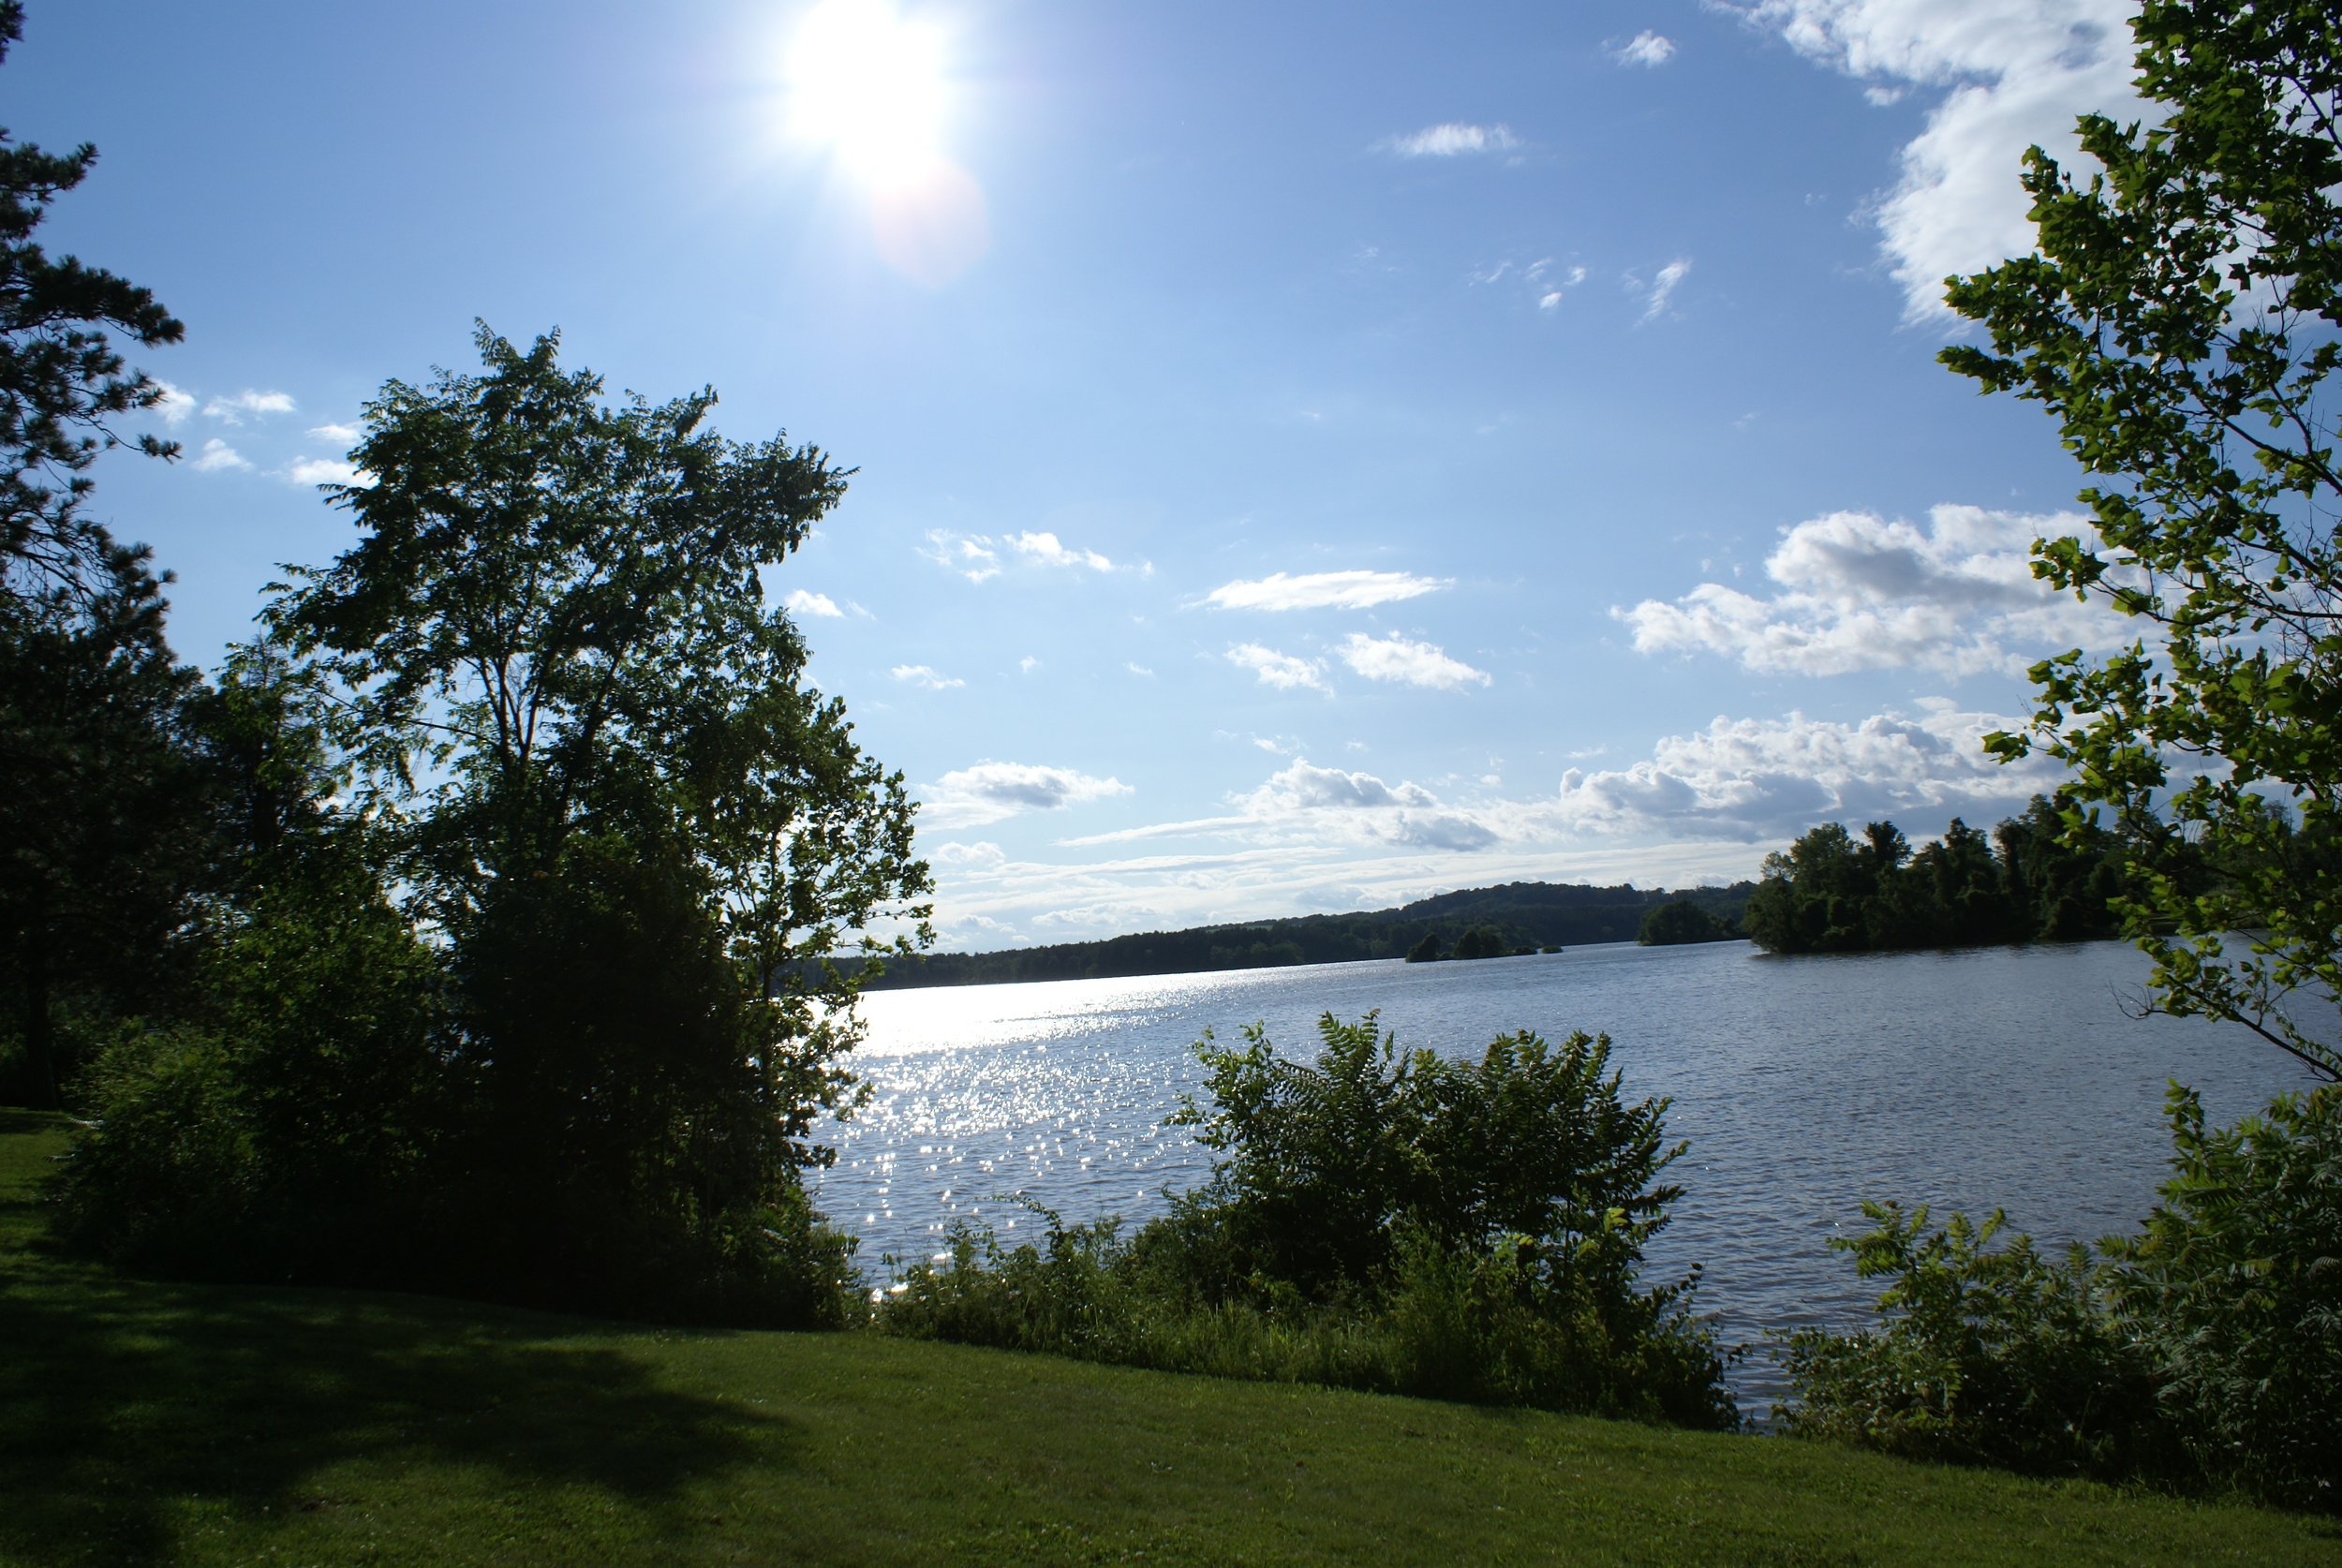 LAKE ONTELAUNEE | READING AREA WATER AUTHORITY